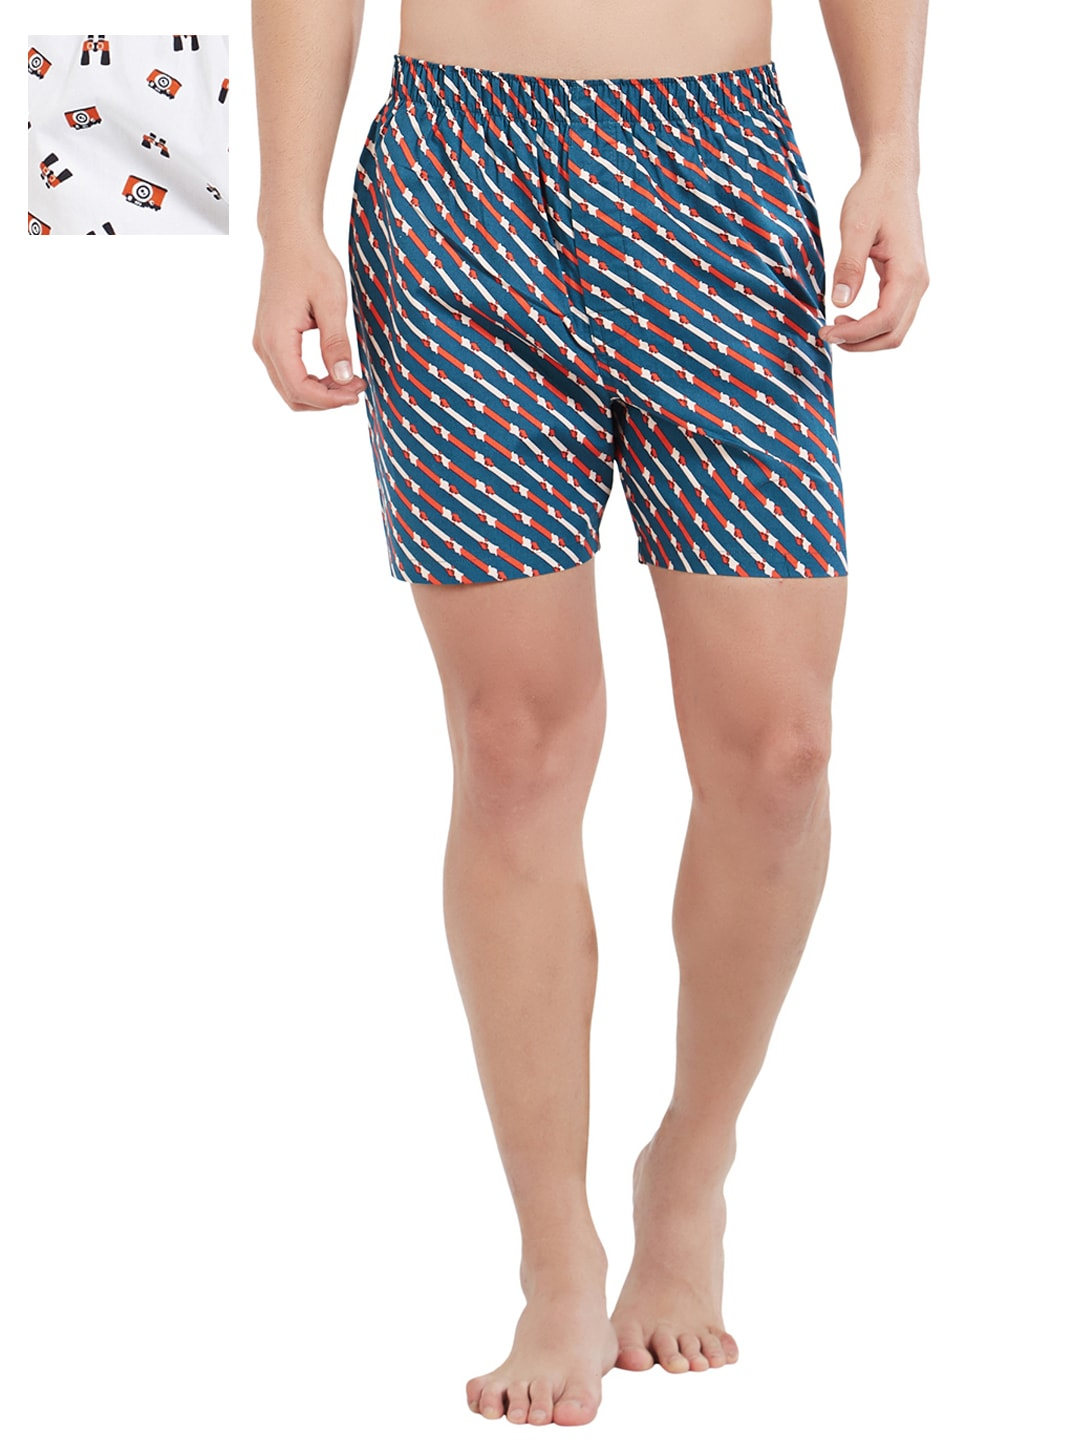 XYXX Men Pack of 2 Slim Fit Printed Boxers XYBOX2PCKN62 image